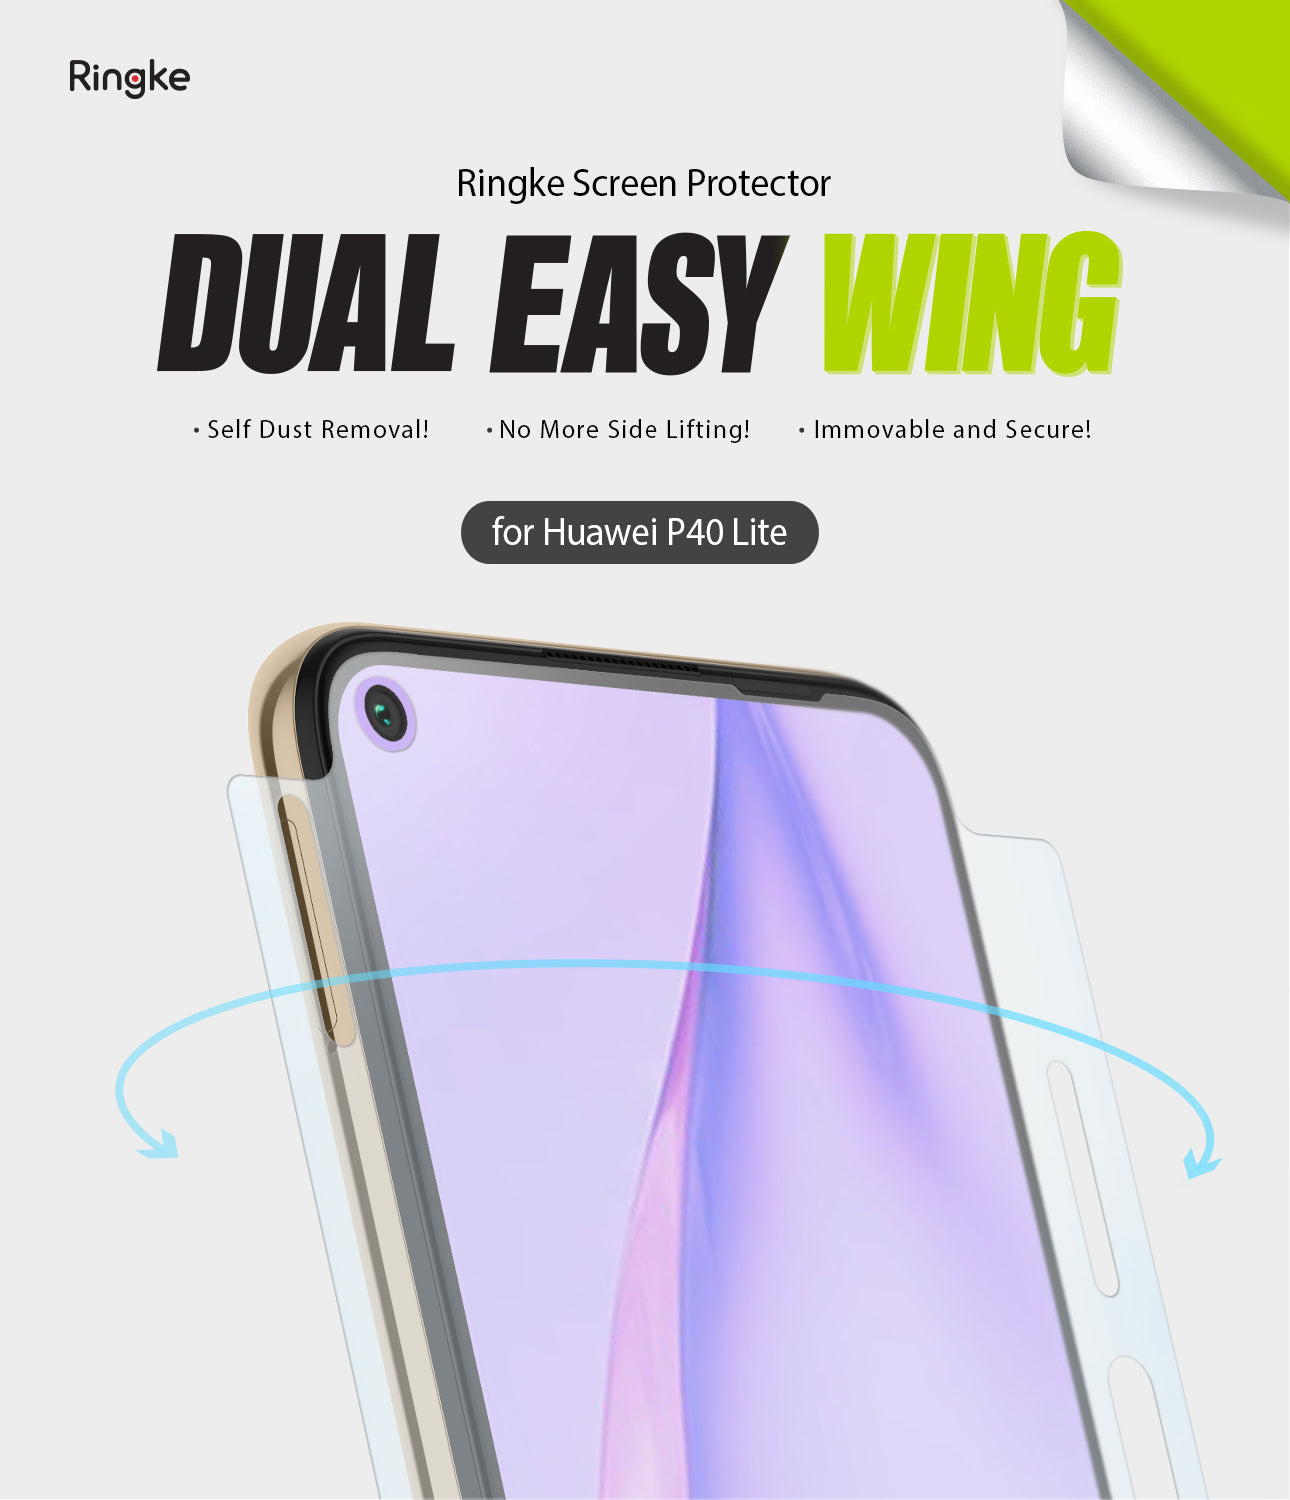 dual easy wing film screen protector for huawei p40 lite